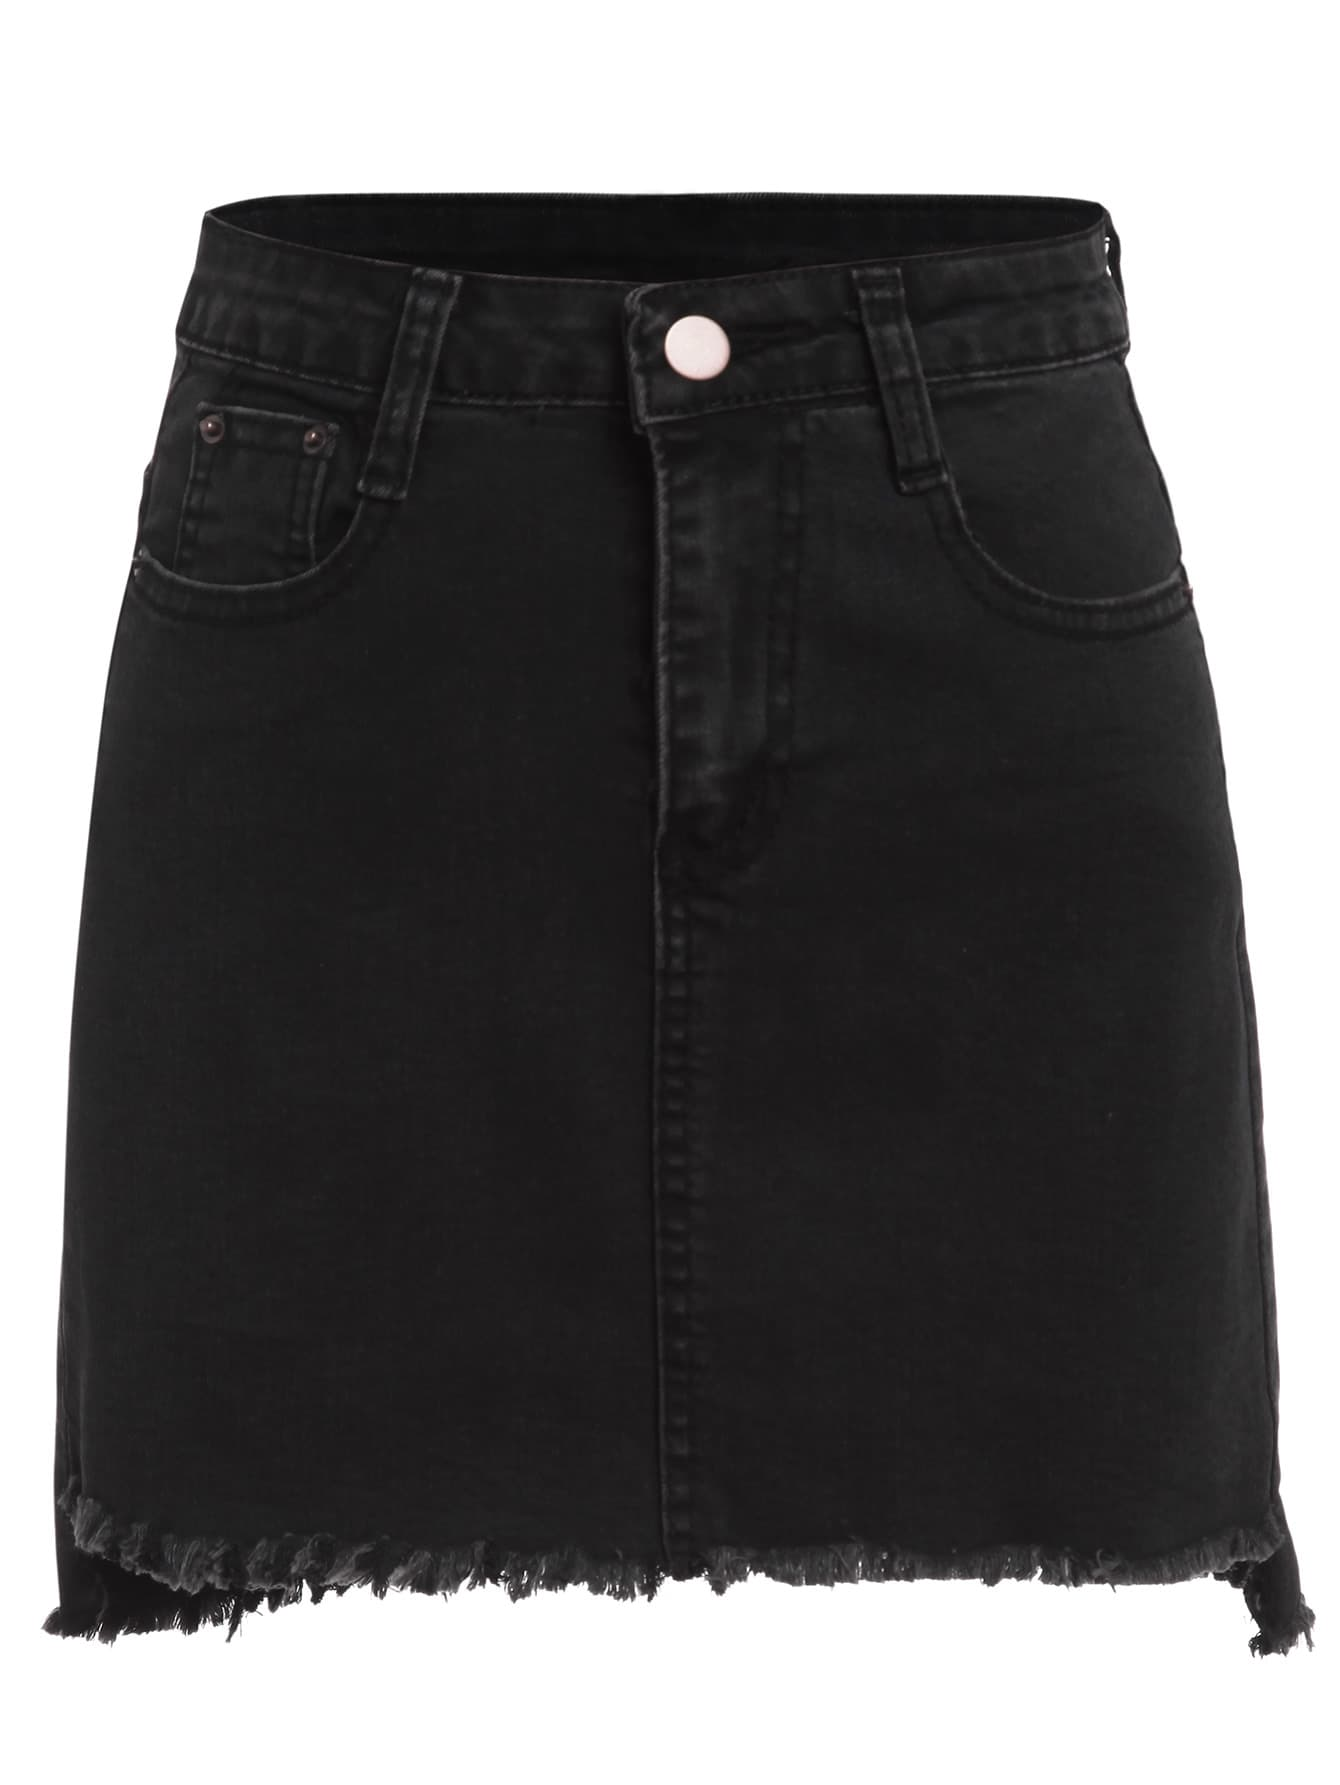 http://us.shein.com/Black-Raw-Hem-Denim-Skirt-p-343287-cat-1732.html?aff_id=4021